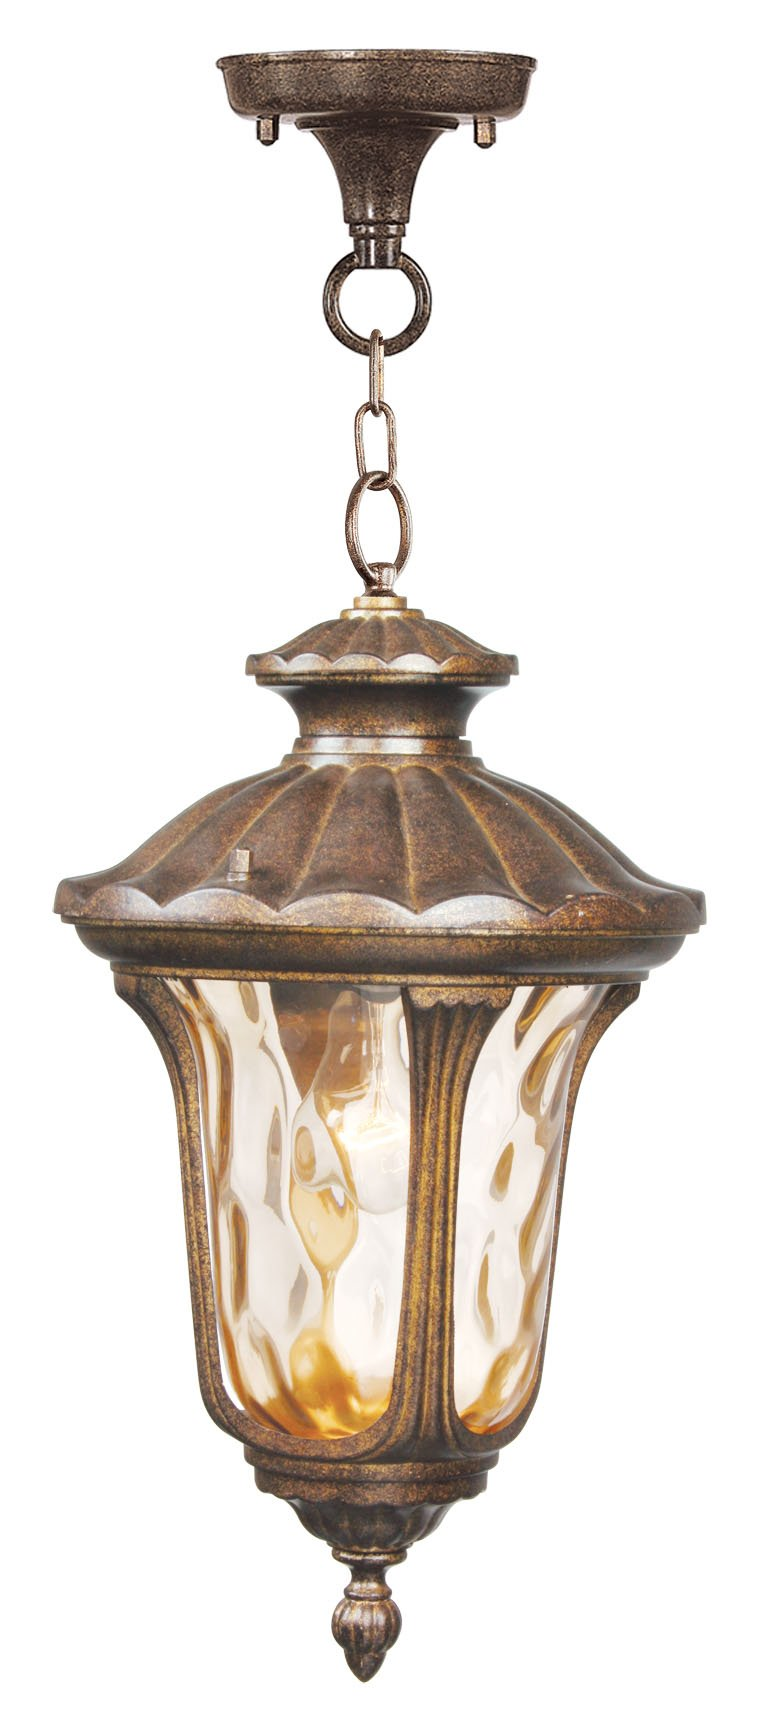 Livex Lighting 7654-50 Oxford 1 Light Outdoor Hanging Lantern, Moroccan Gold by Livex Lighting